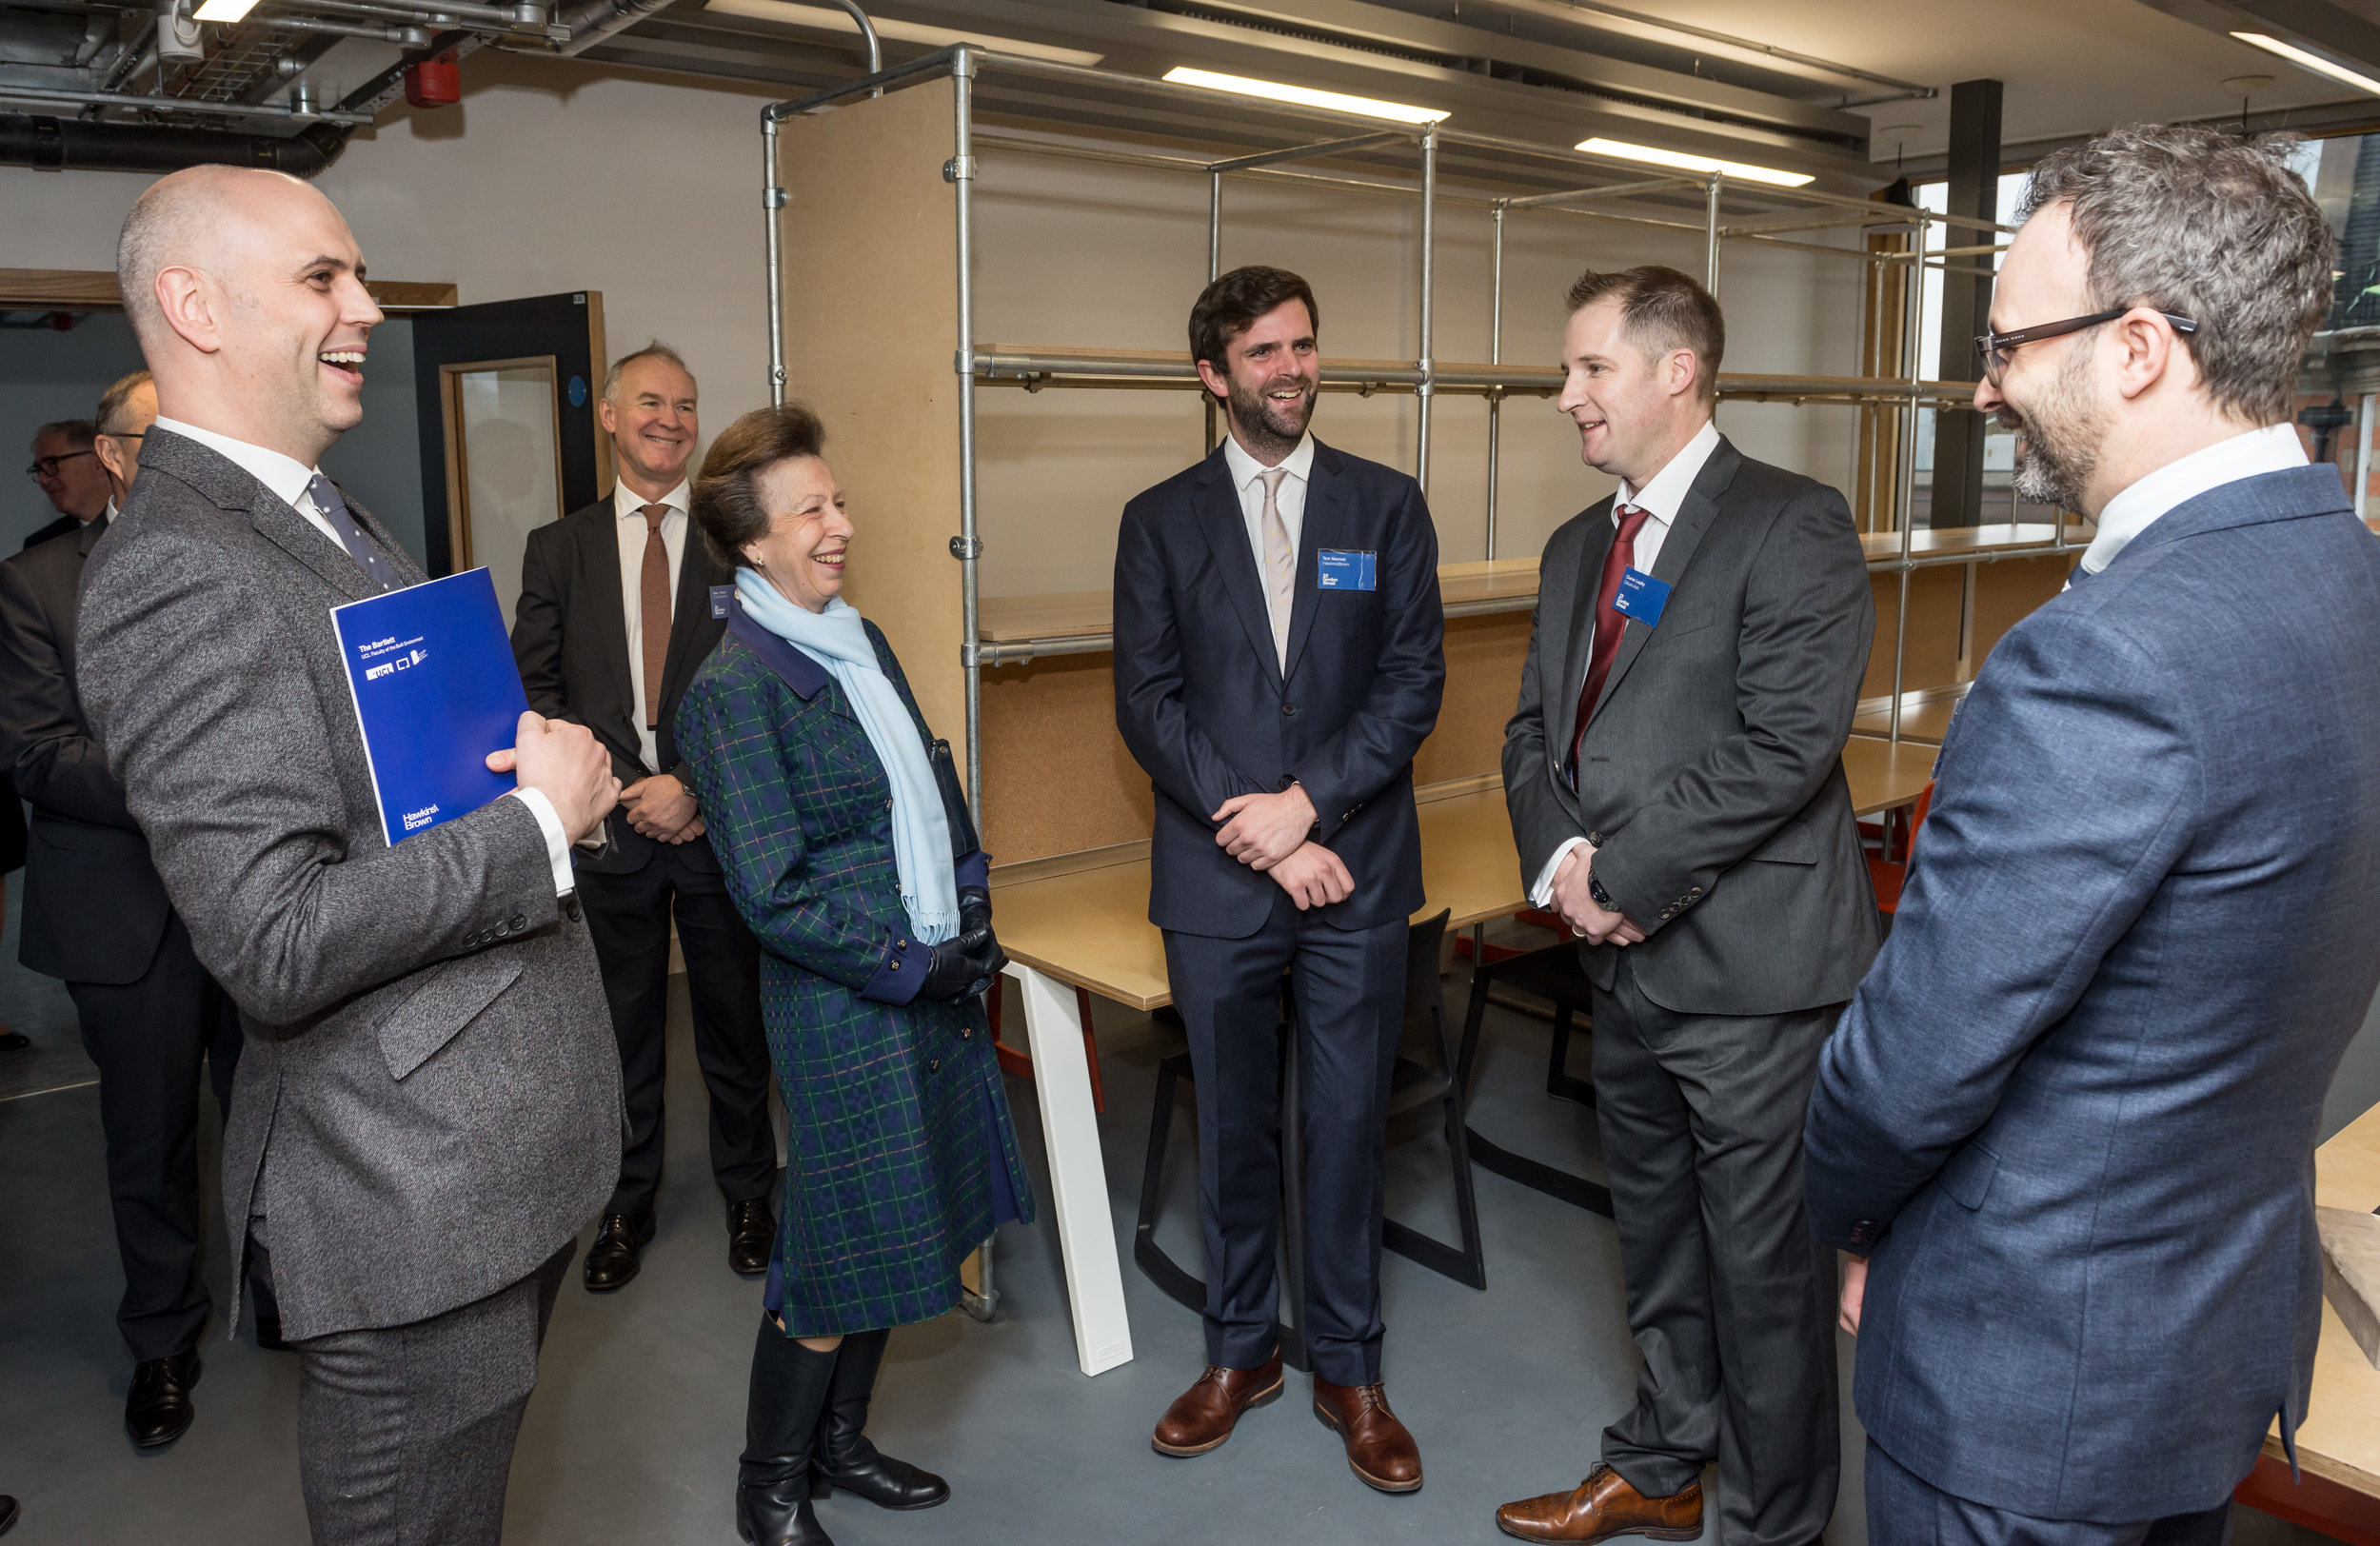 Lead Architect Euan MacDonald introduces HRH Princess Anne to Associate architect Tom Noonan, Project Manager Aaron Coffey and site Manager Ciaran Leahy as she tours the refurbished Bartlett School of Architecture before official opening the building by Hawkins/Brown Architects, 22 Gordon Street. London 16/12/2016